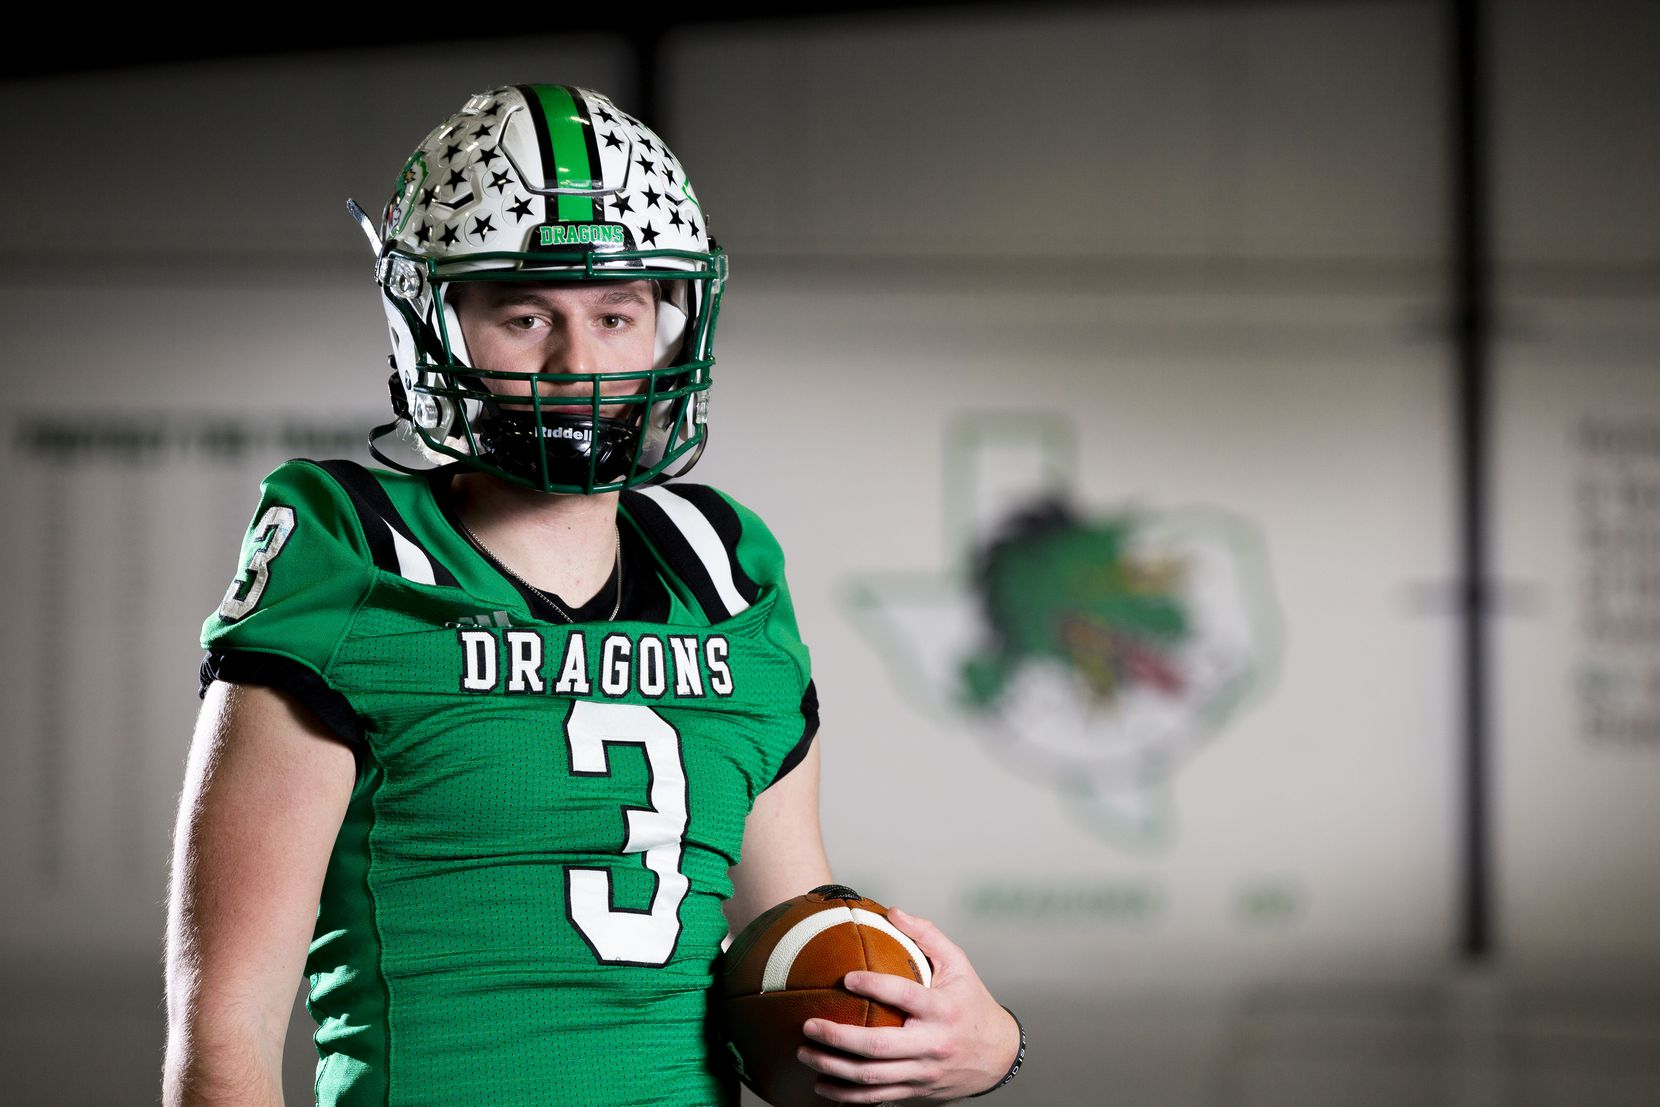 Southlake junior quarterback Quinn Ewers poses for a photo at Southlake High School, Tuesday, February 2, 2021.  Ewers is the No. 1 recruit in the country for the 2022 class and has committed to The Ohio State. (Brandon Wade/Special Contributor)